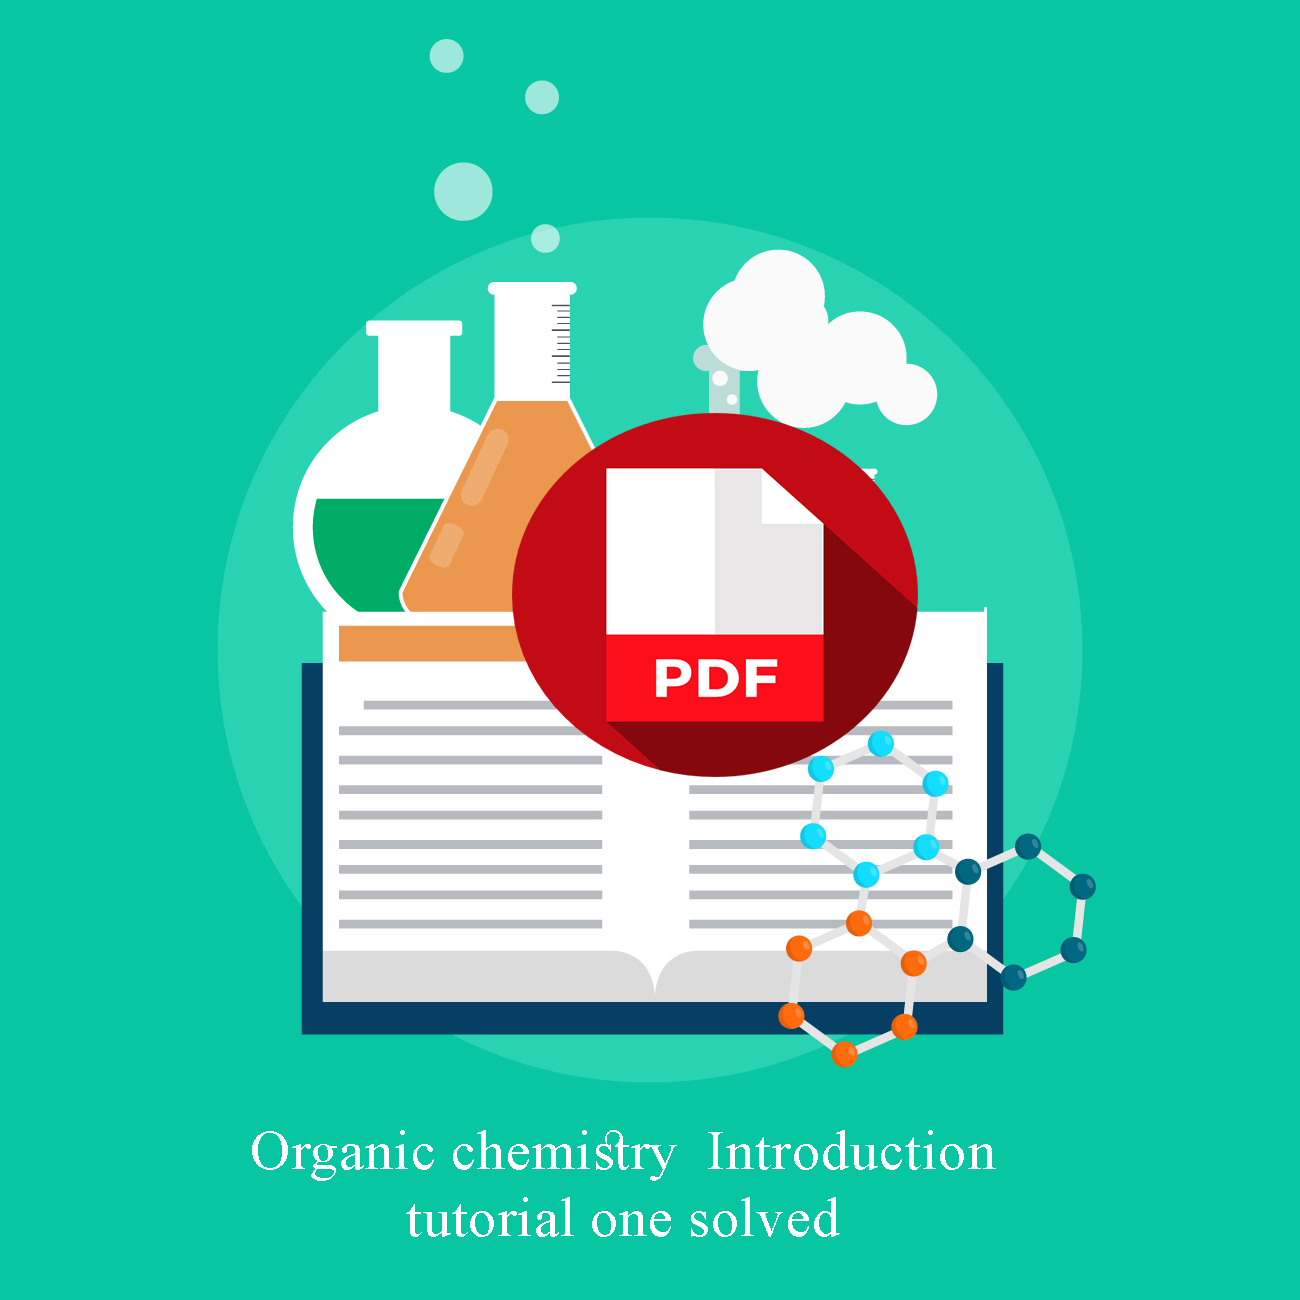 PDF:Organic chemistry  Introduction tutorial one solved